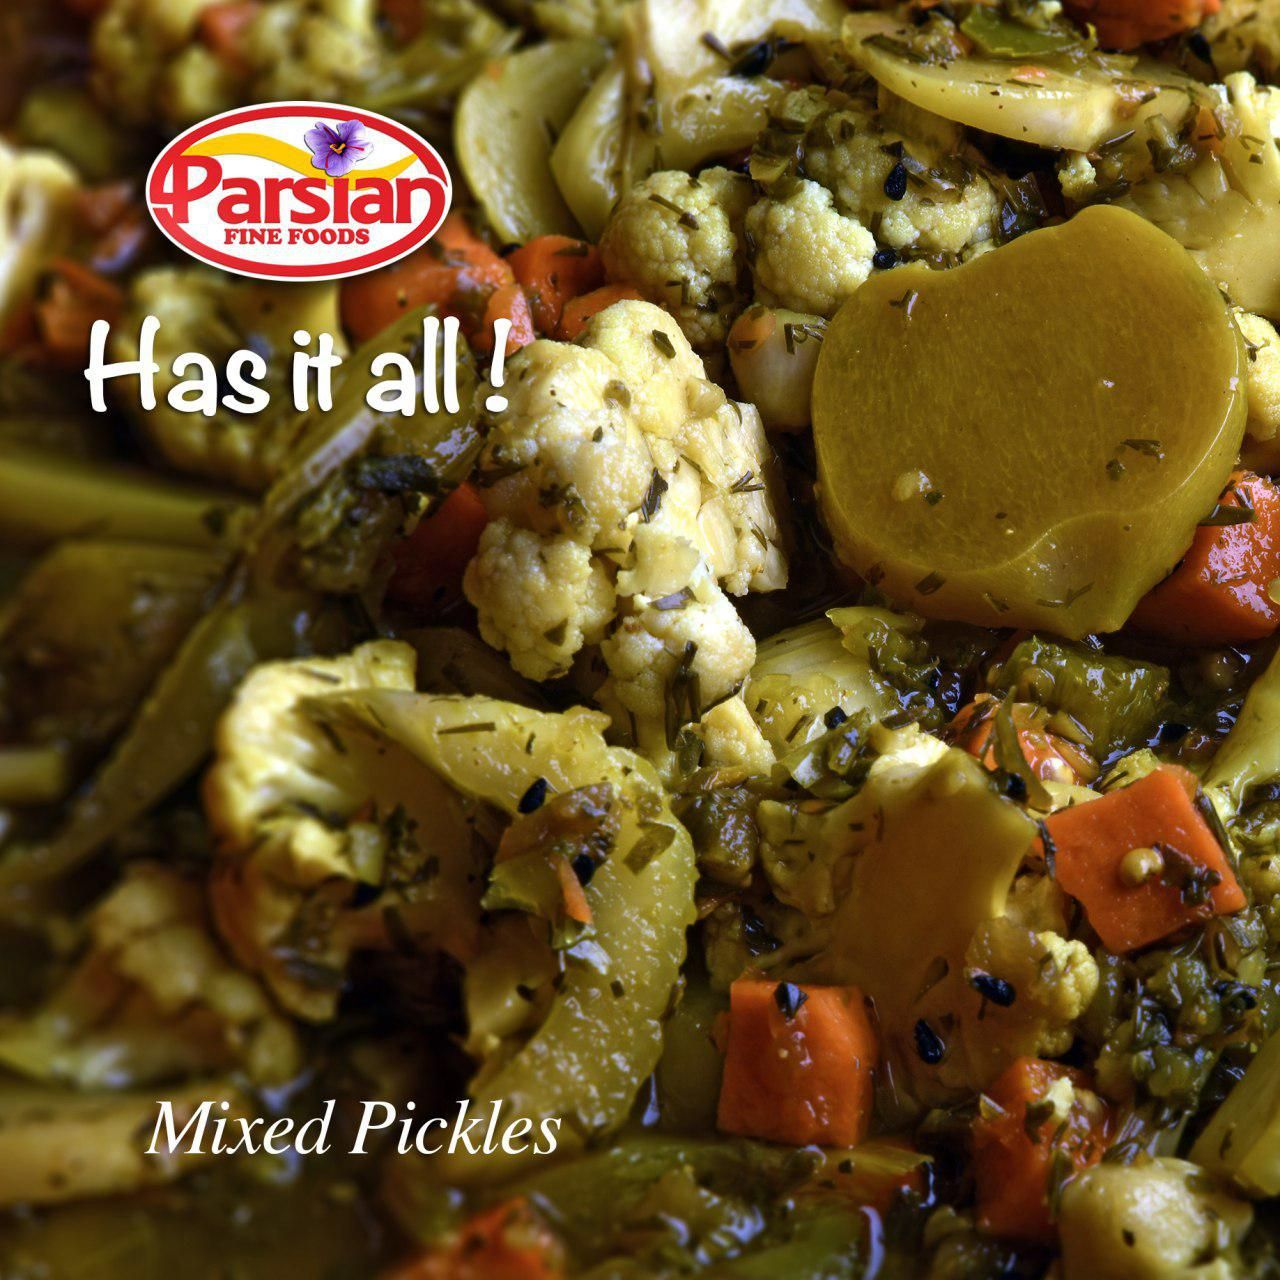 Torshi, or turshi, are simple vegetable pickles that add a